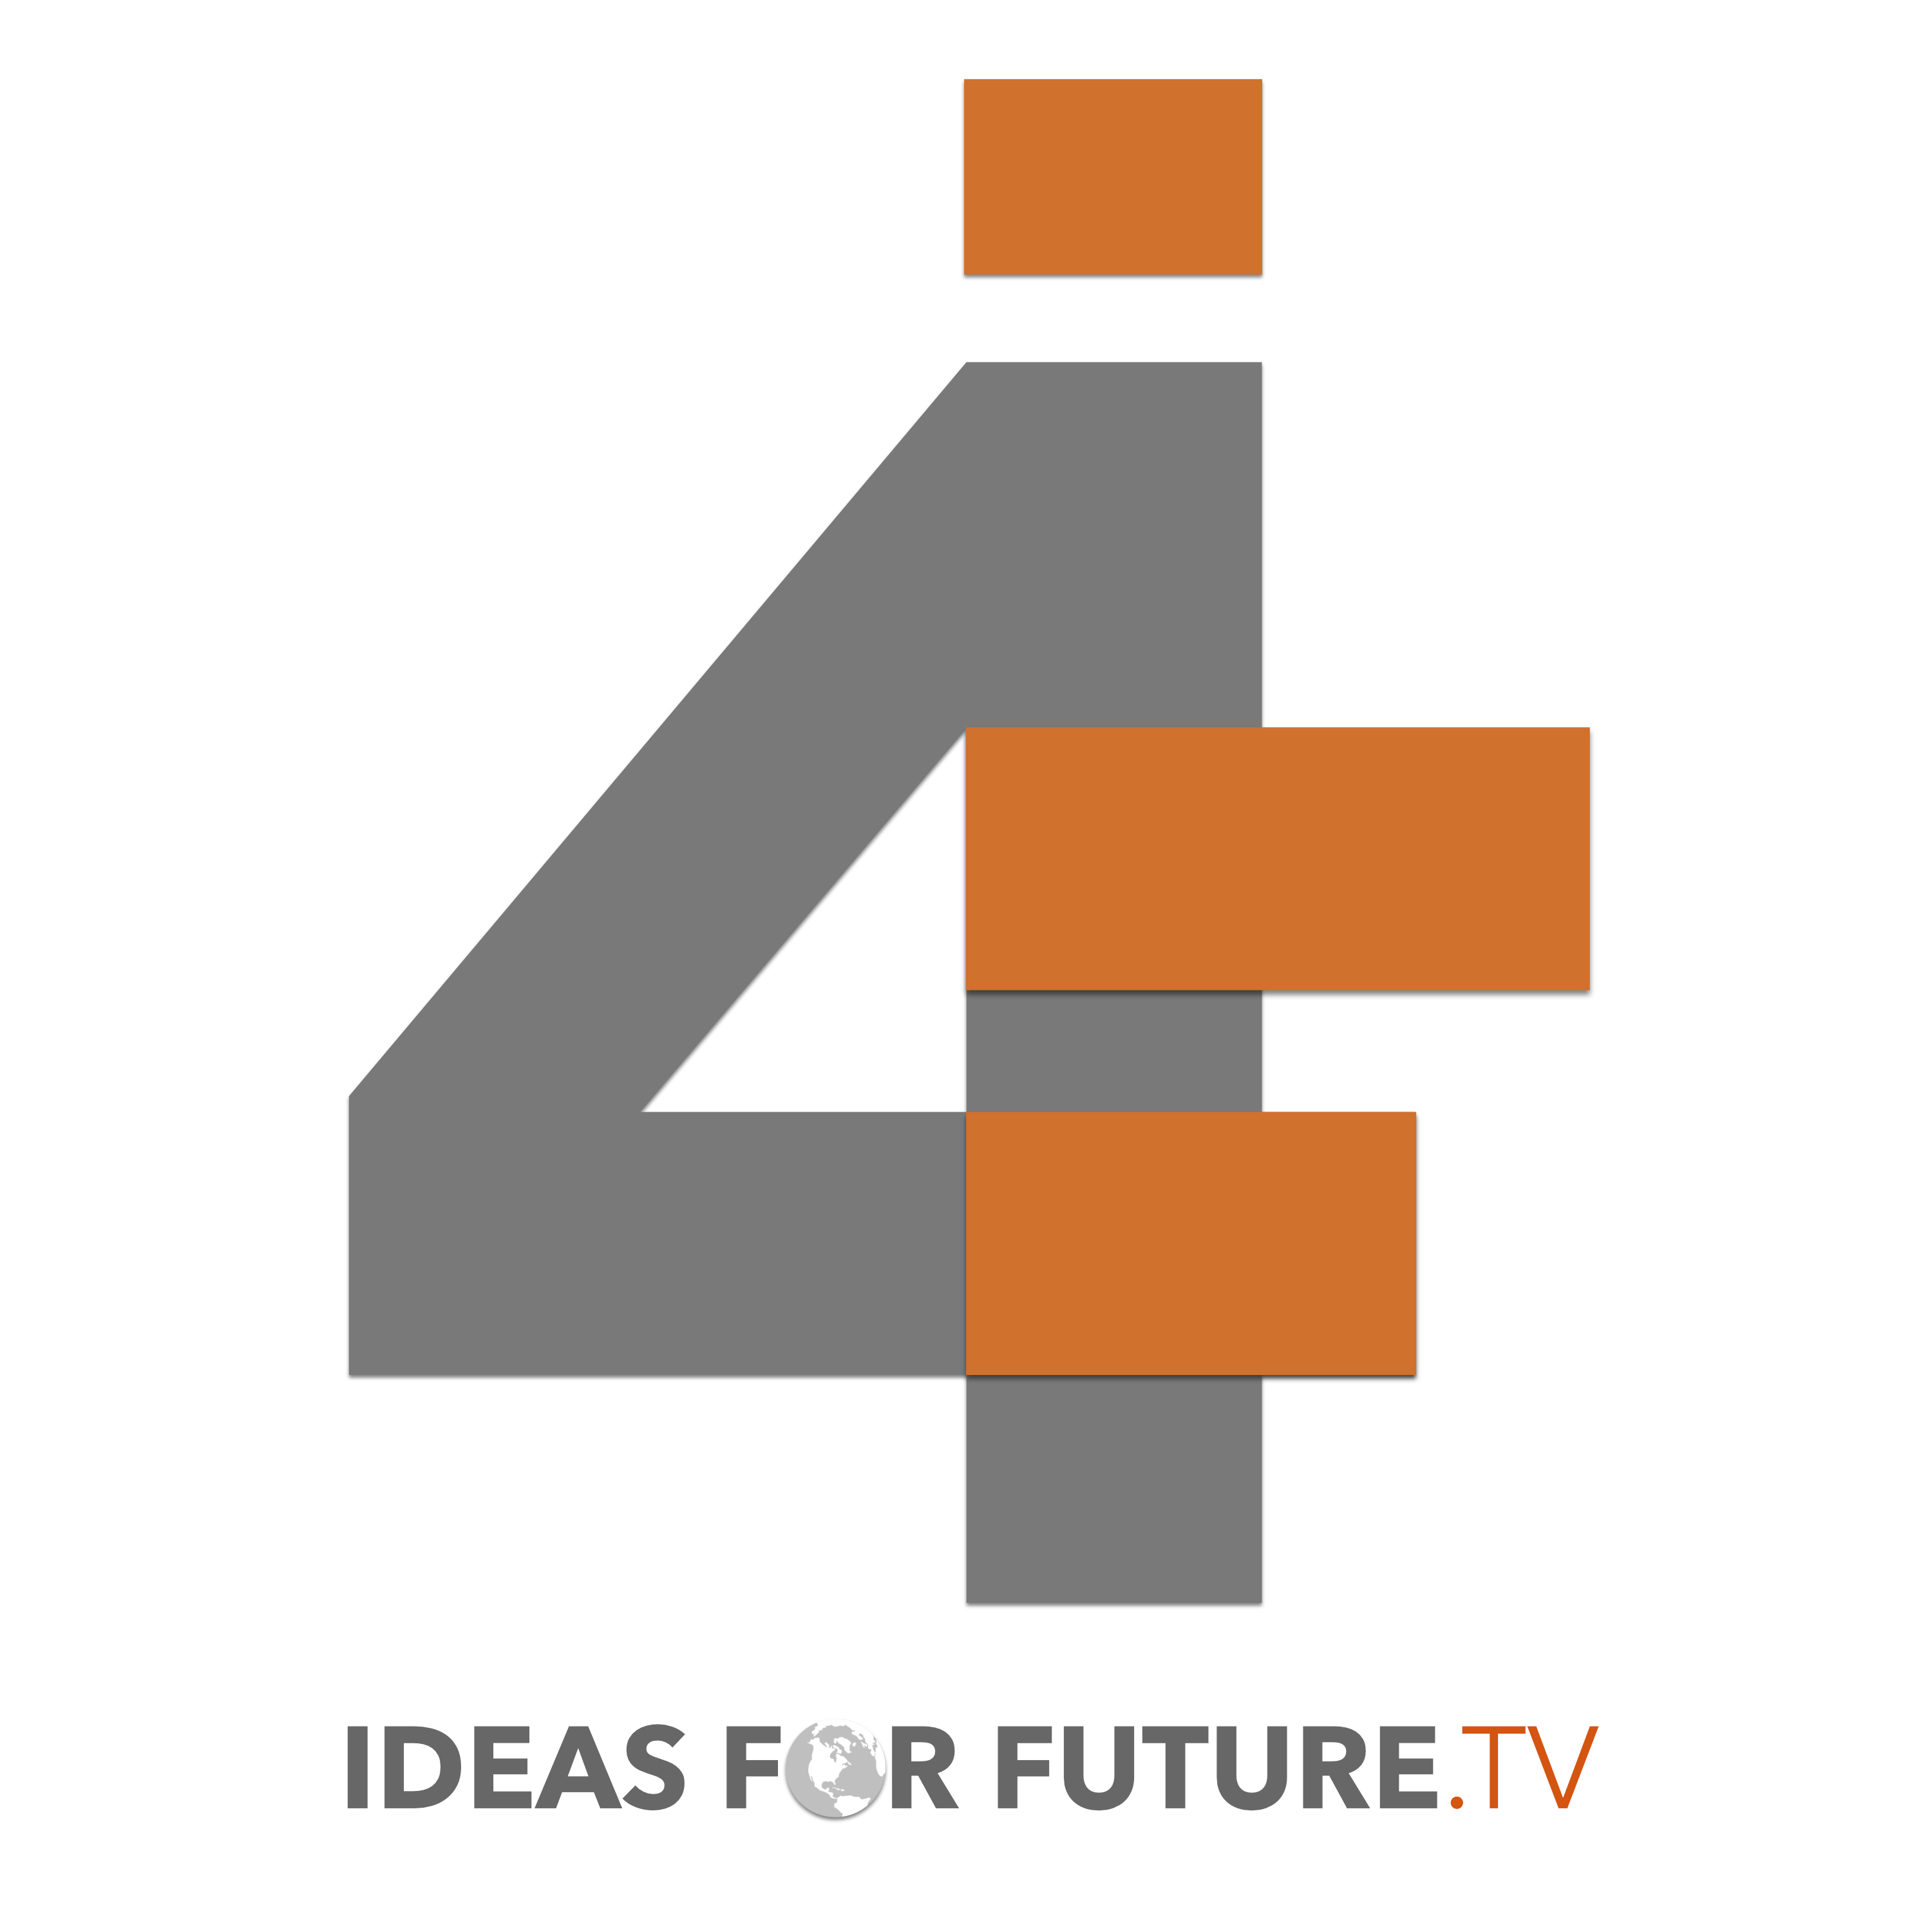 IDEAS FOR FUTURE TV